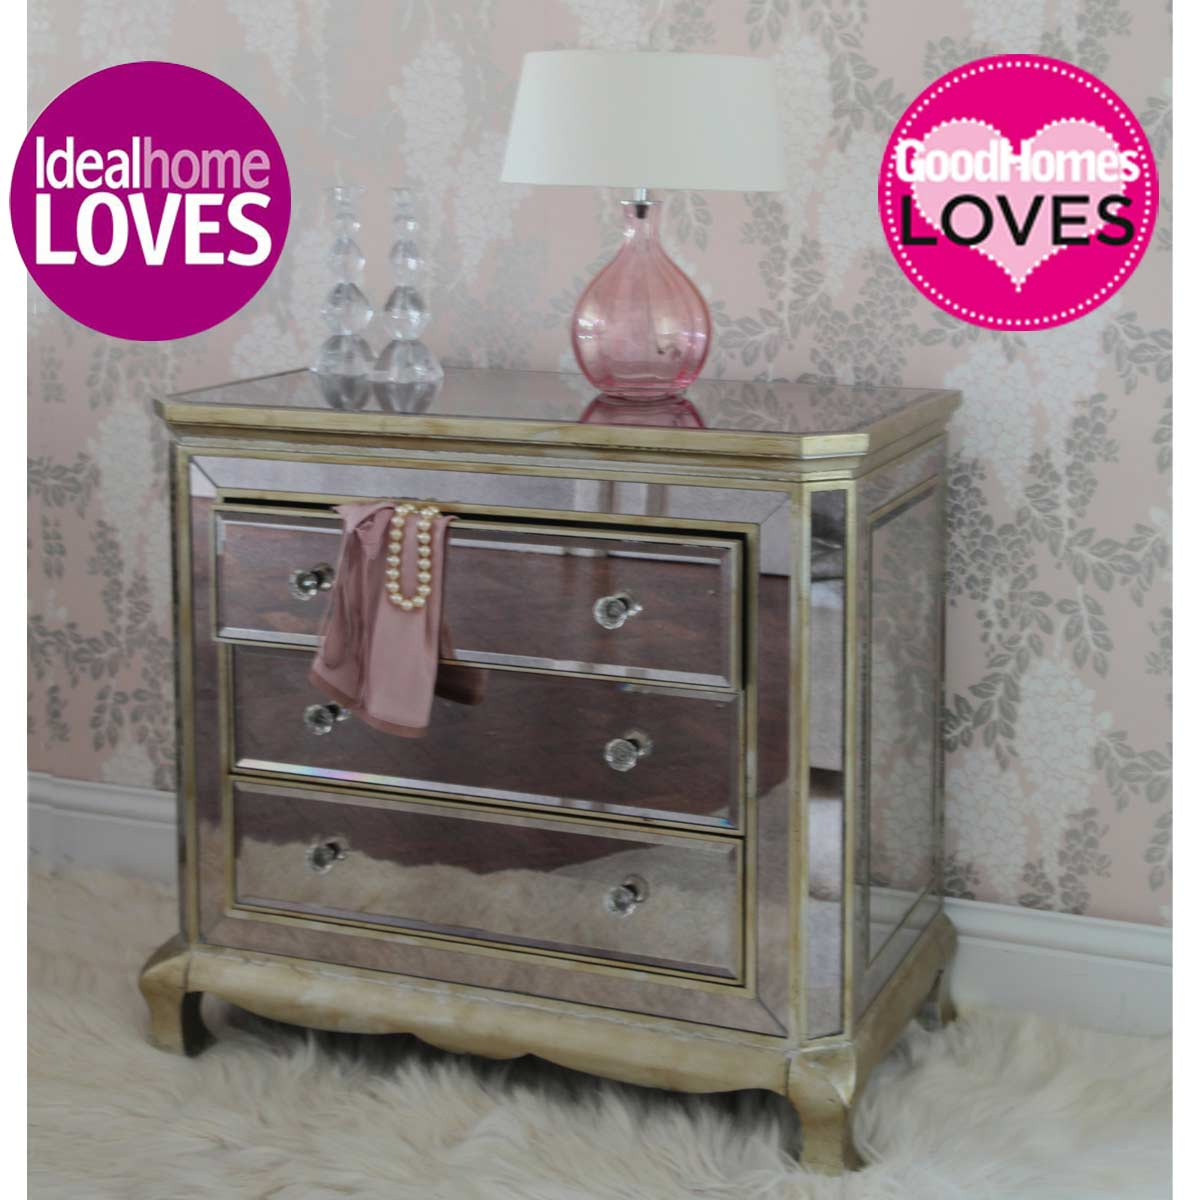 Venetian distressed 3 drawer mirrored chest of drawers image 1 by - Venetian 3 Drawer Mirrored Chest Drawers French Bedroom